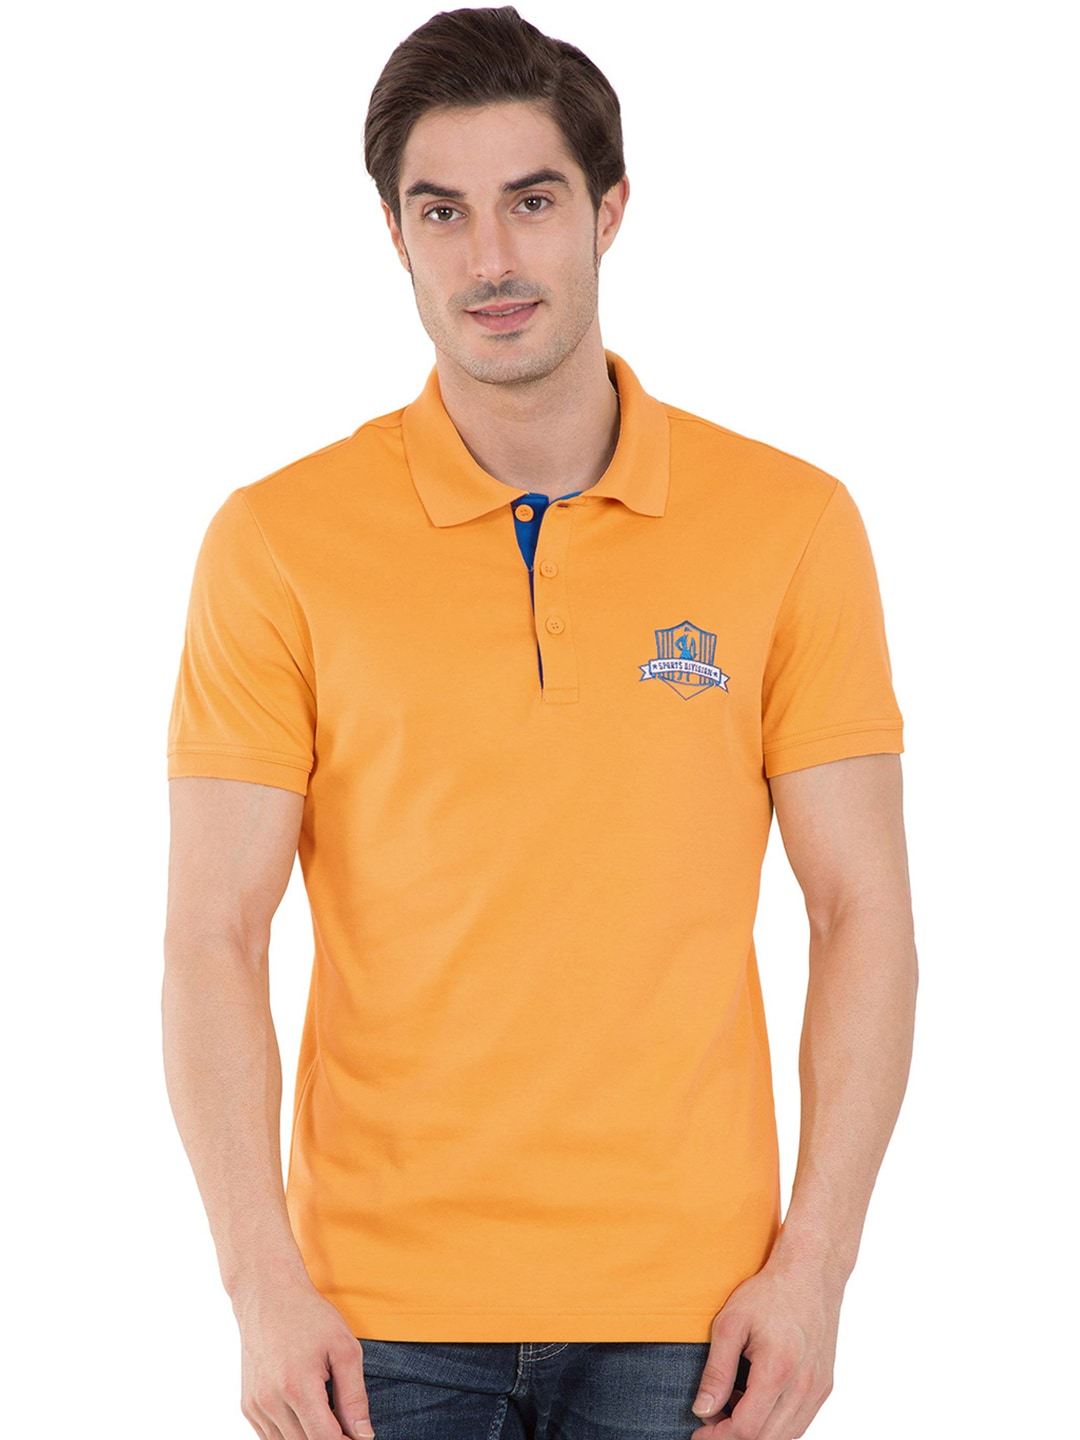 238d8b38 Jockey Tshirt Tops - Buy Jockey Tshirt Tops online in India